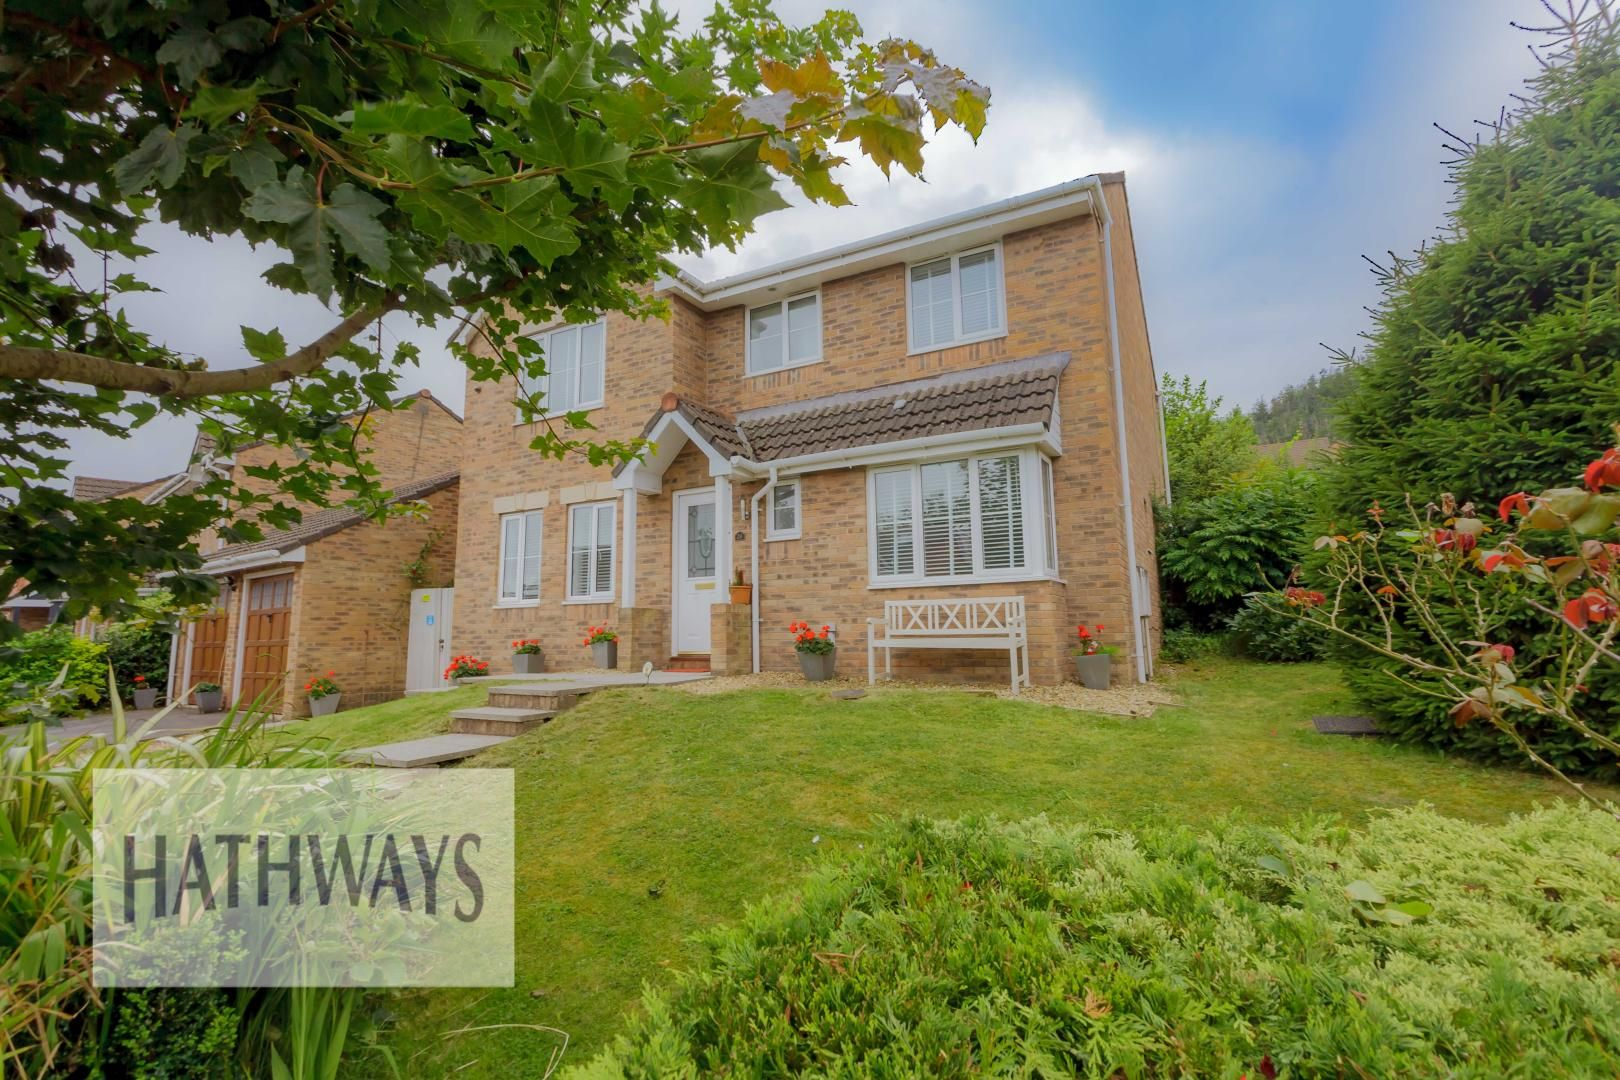 4 bed house for sale in Forest View, NP44